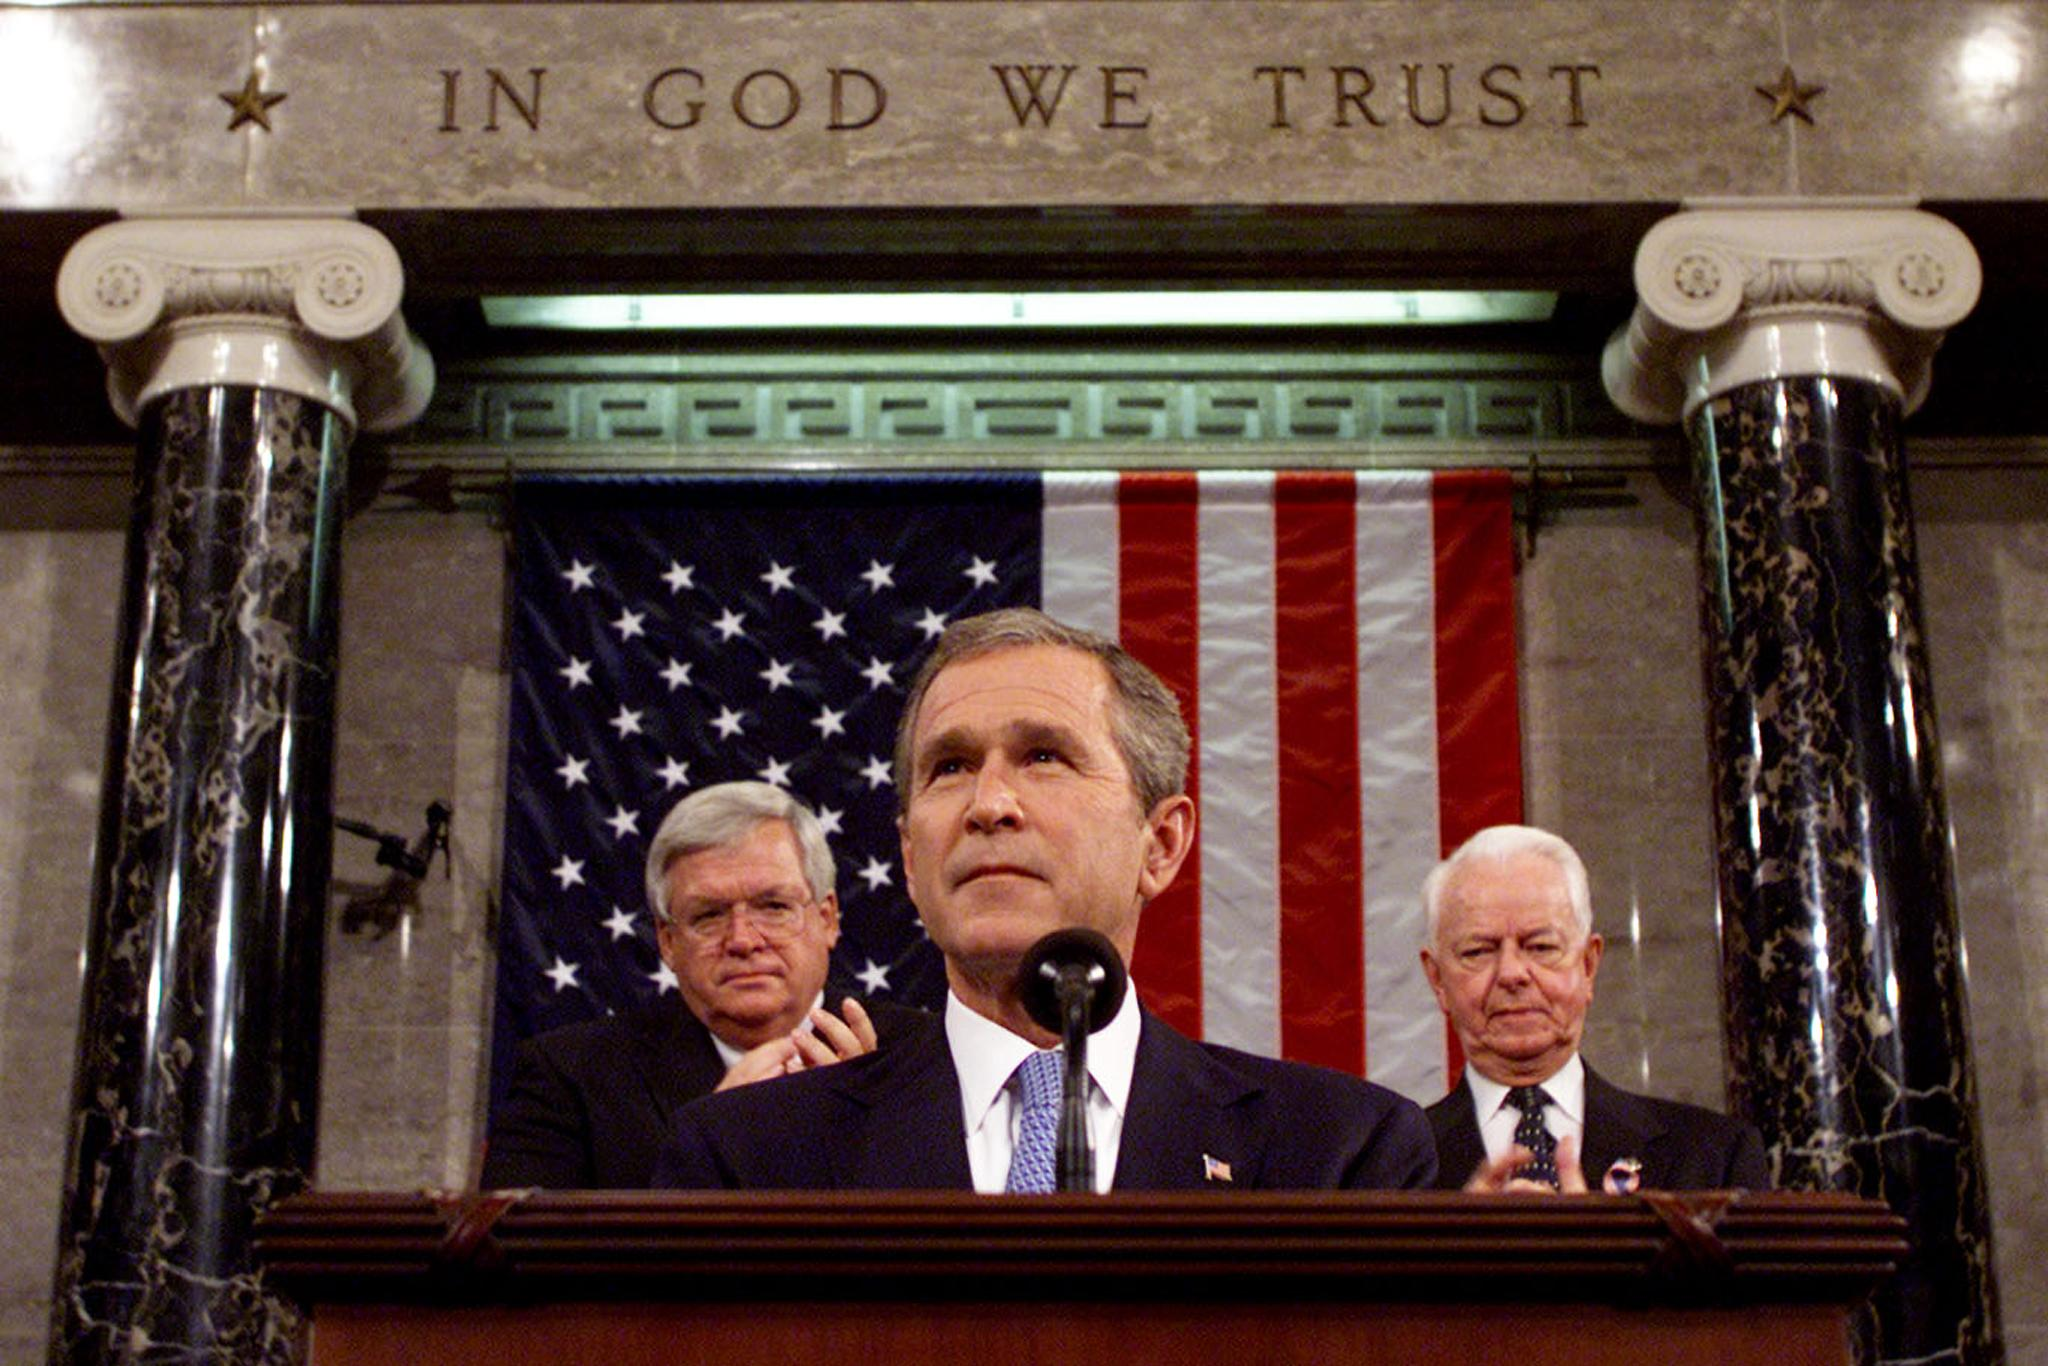 """WASHINGTON, DC - SEPTEMBER 20: US President George W Bush, with Speaker of the House Dennis Hastert(R-IL) and Robert Byrd(R-WV), addresses a Joint Session of Congress, 20 September 2001 in the House Chamber in the US Capitol in Washington, DC. Bush delivered an ultimatum Thursday to Afghanistan's ruling Taliban: """"immediately"""" turn over Osama bin Laden -- prime suspect in last week's terror strikes -- or face Washington's wrath. AFP PHOTO /POOL/ Win McNamee (Photo credit should read WIN MCNAMEE/AFP via Getty Images)"""